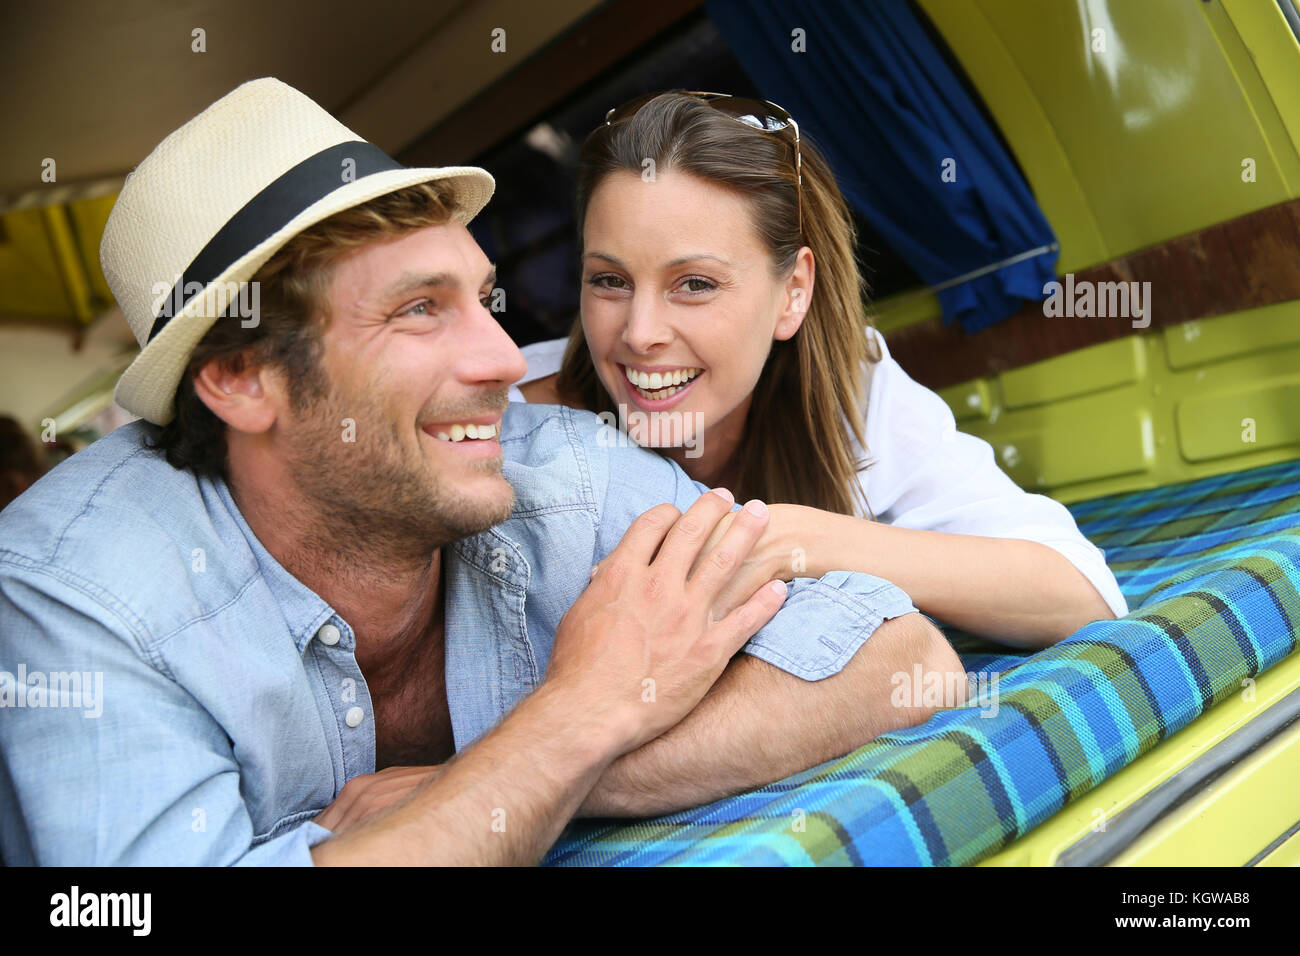 Cheerful young couple laying on a camper van - Stock Image